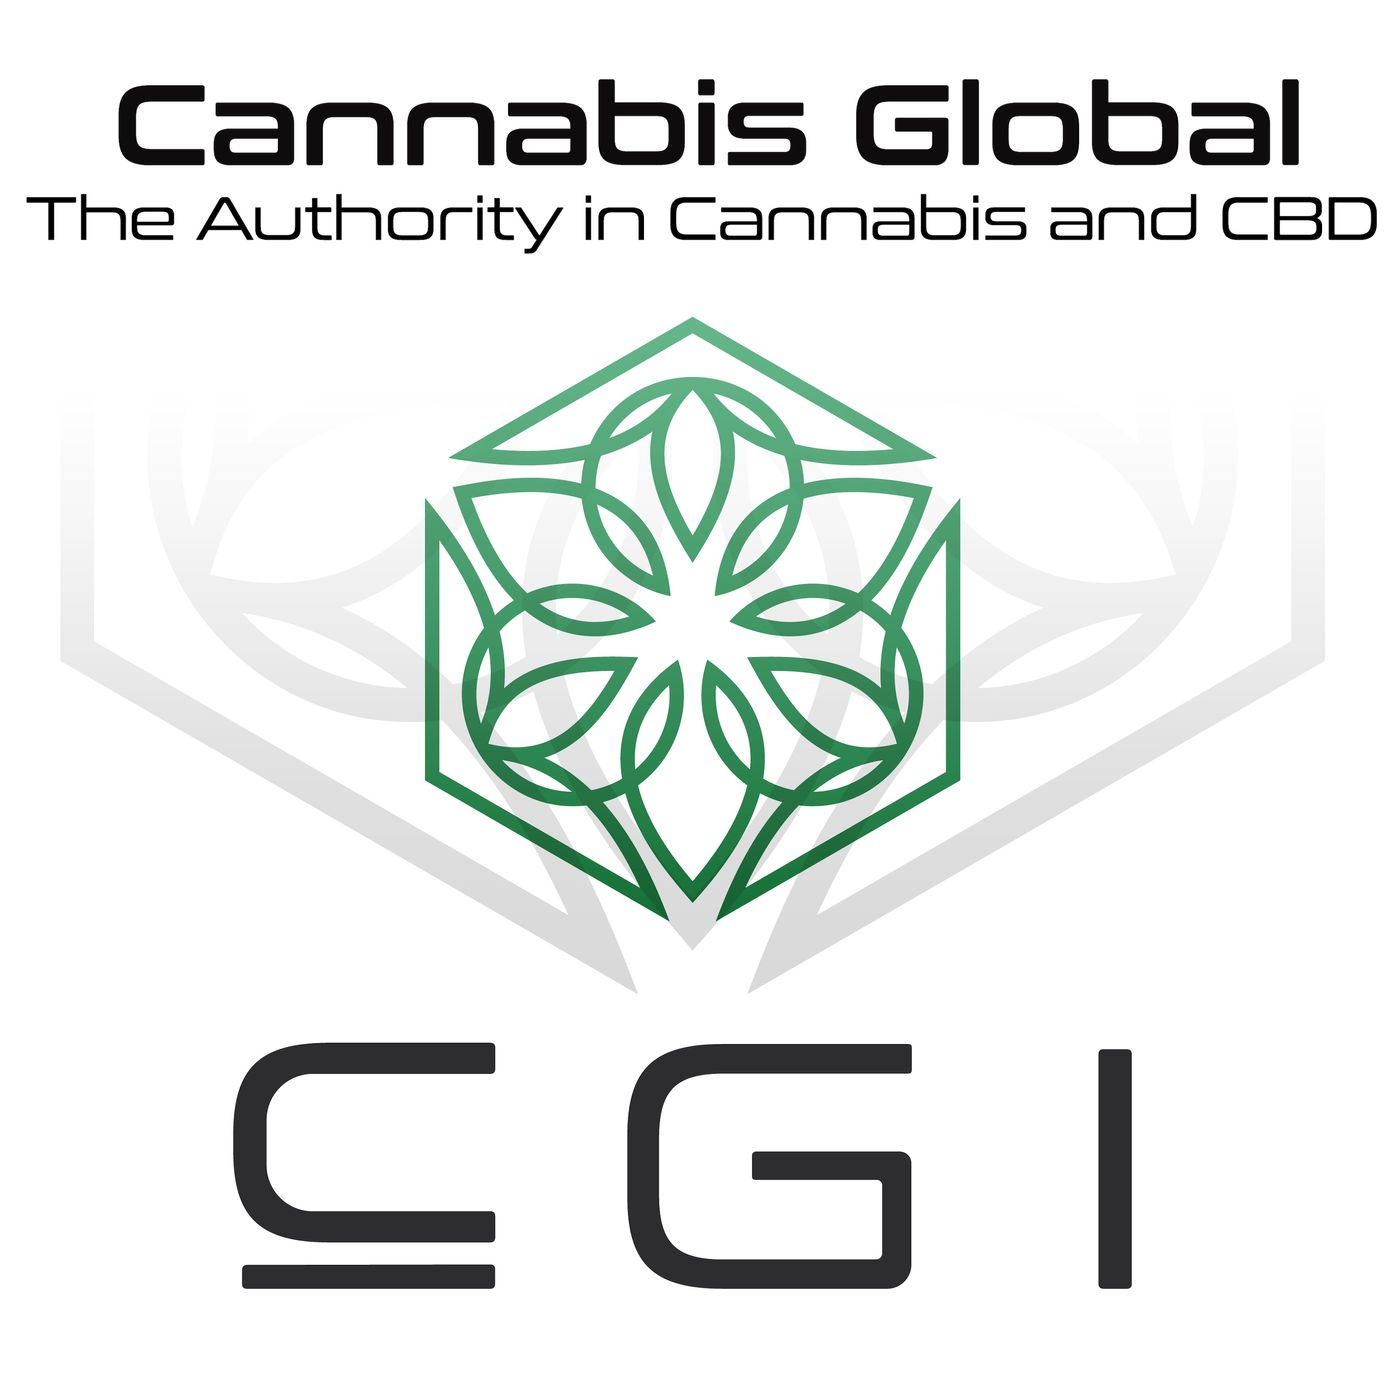 Live Life Driven - How the Cannabis Global CEO, Arman Tabatabaei, recovers from Covid and runs a successful business